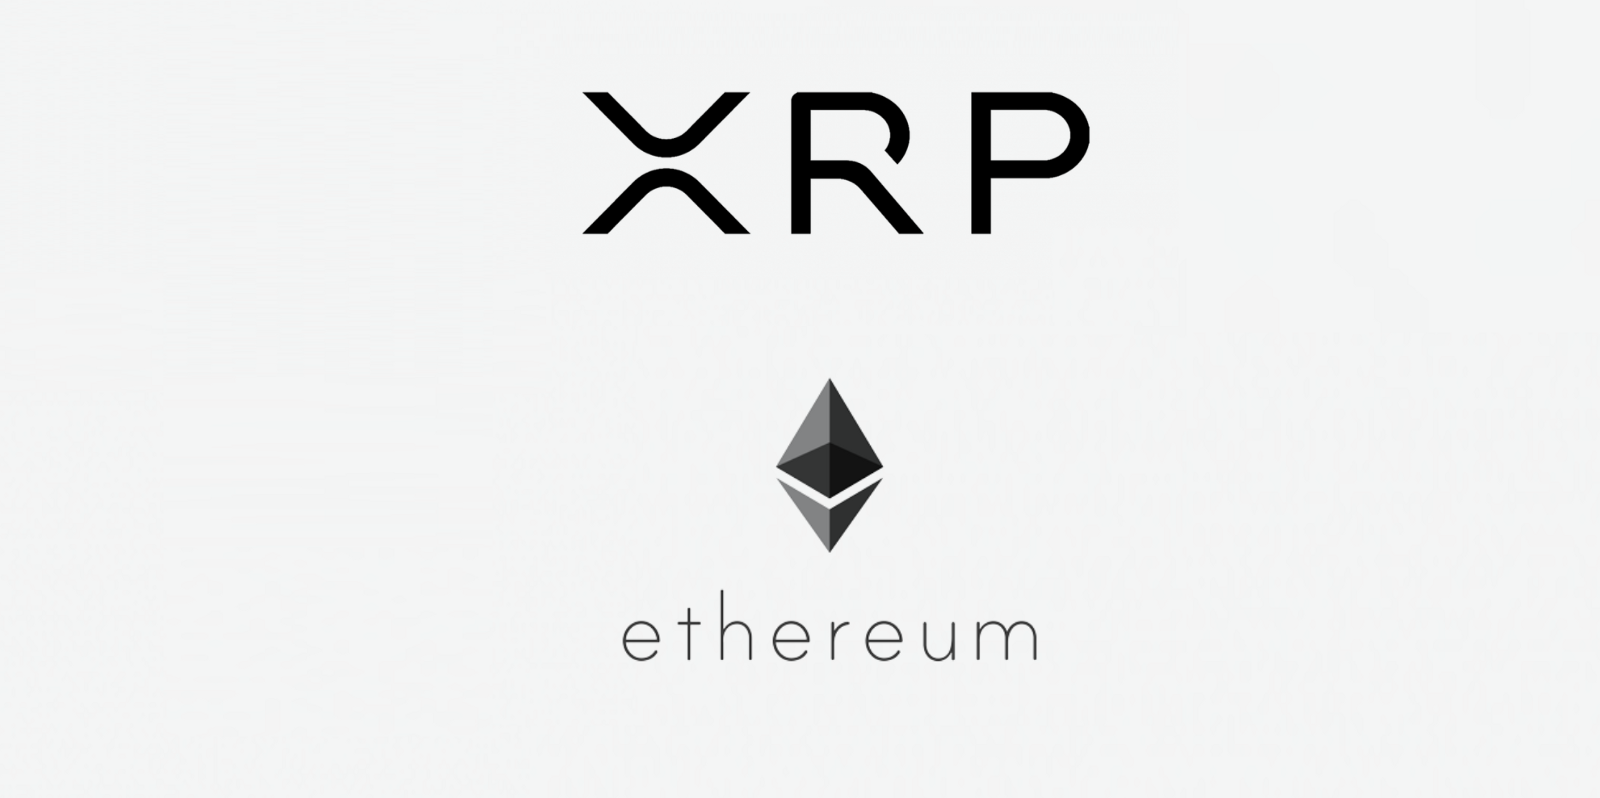 How to invest bitcoin vs ethereum